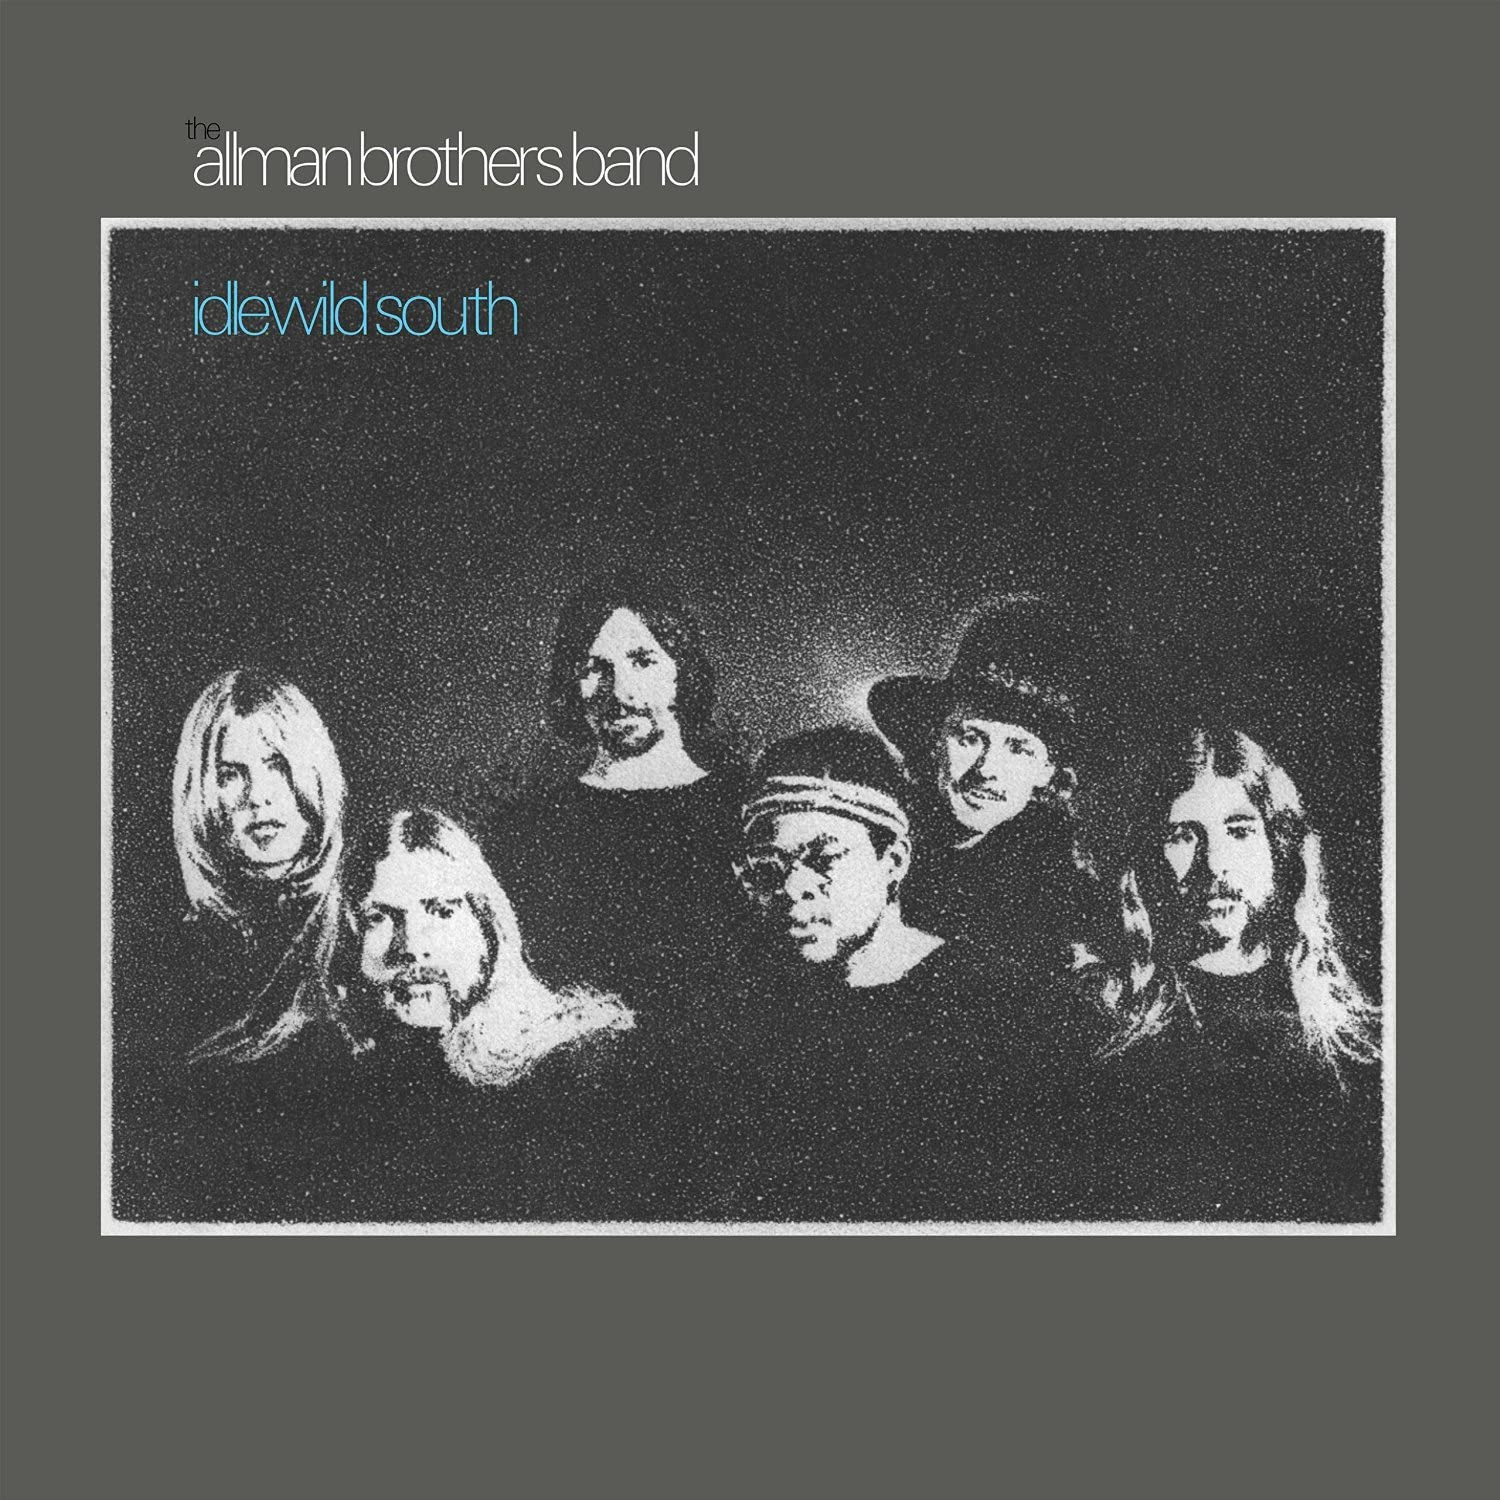 ALLMAN BROTHERS BAND - ADLEWILD SOUTH SUPER DELUX (3CD+BLU RAY)